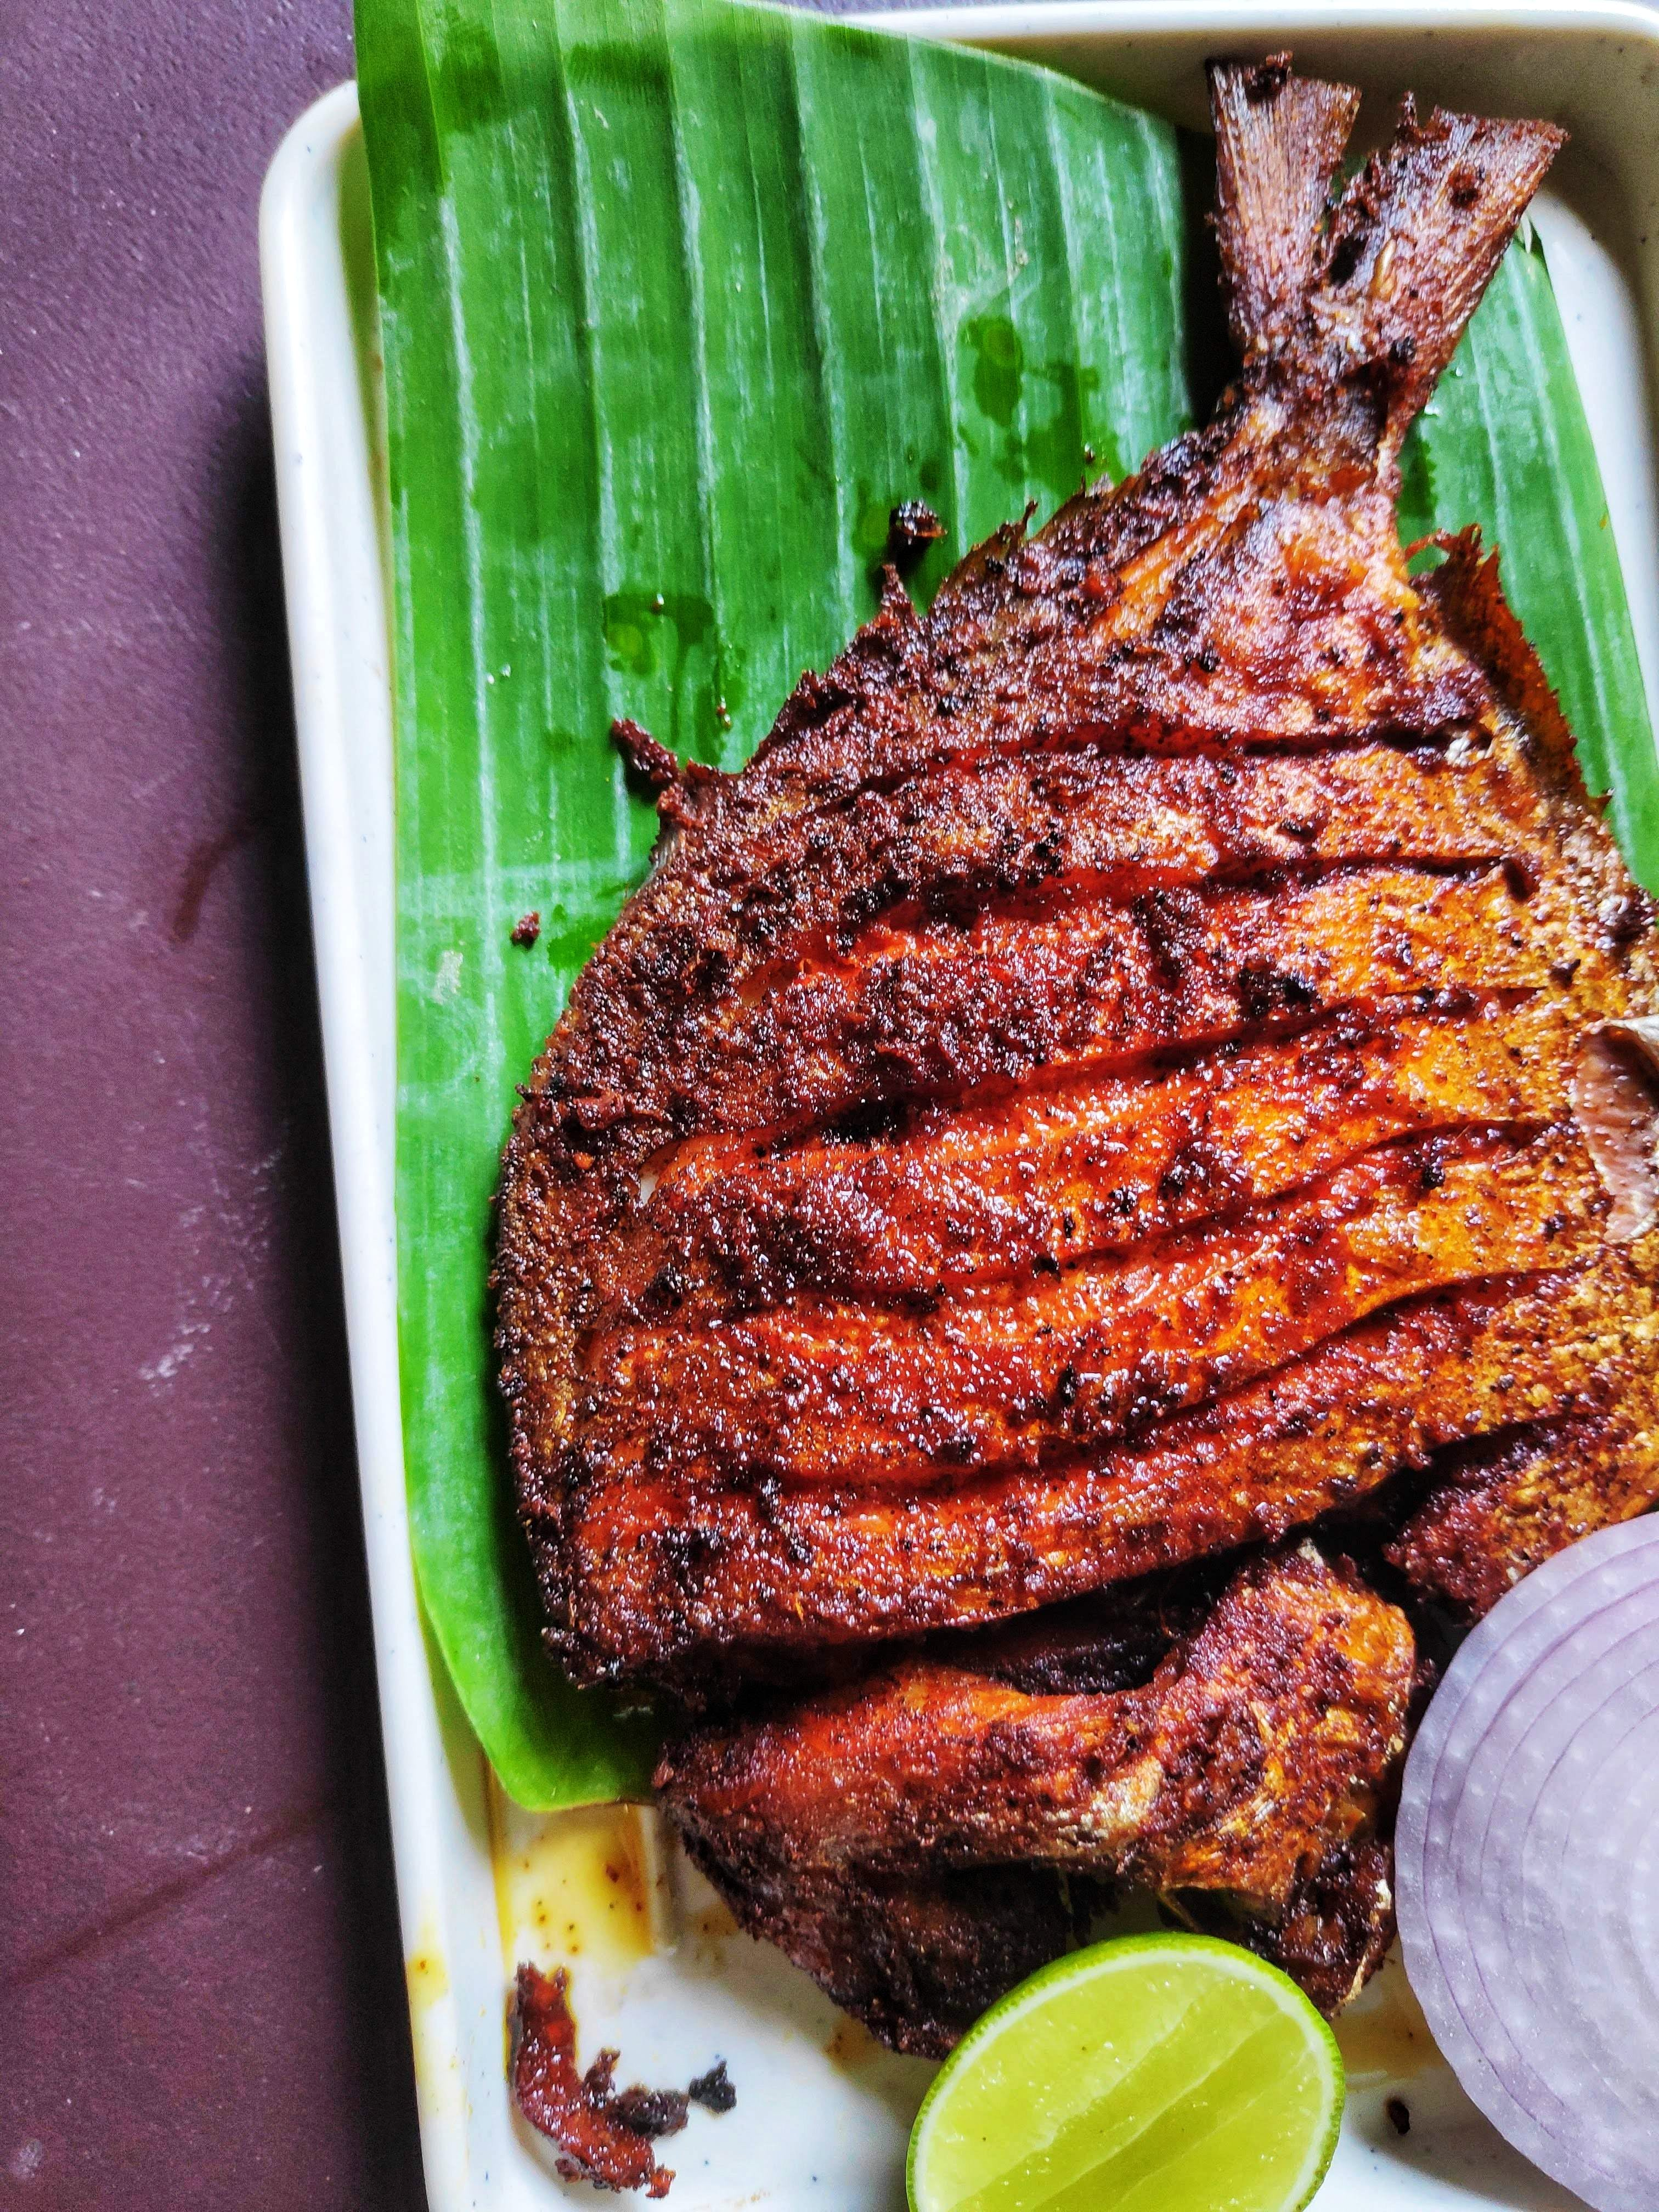 Food,Dish,Cuisine,Pork chop,Ingredient,Steak,Meat,Produce,Carne asada,Ikan bakar